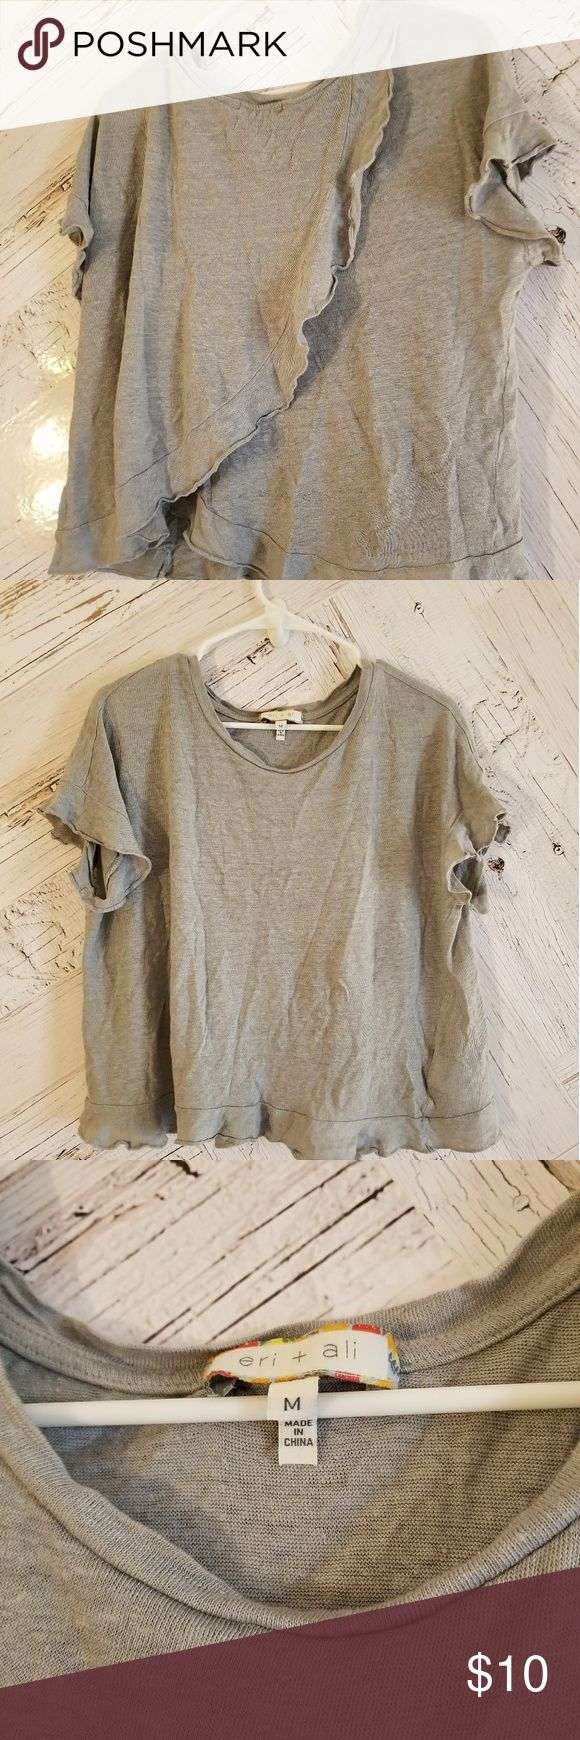 Anthropologie top Light blue/gray slouchy top from Anthropologie. Size medium. eri + ali Tops Tees - Short Sleeve